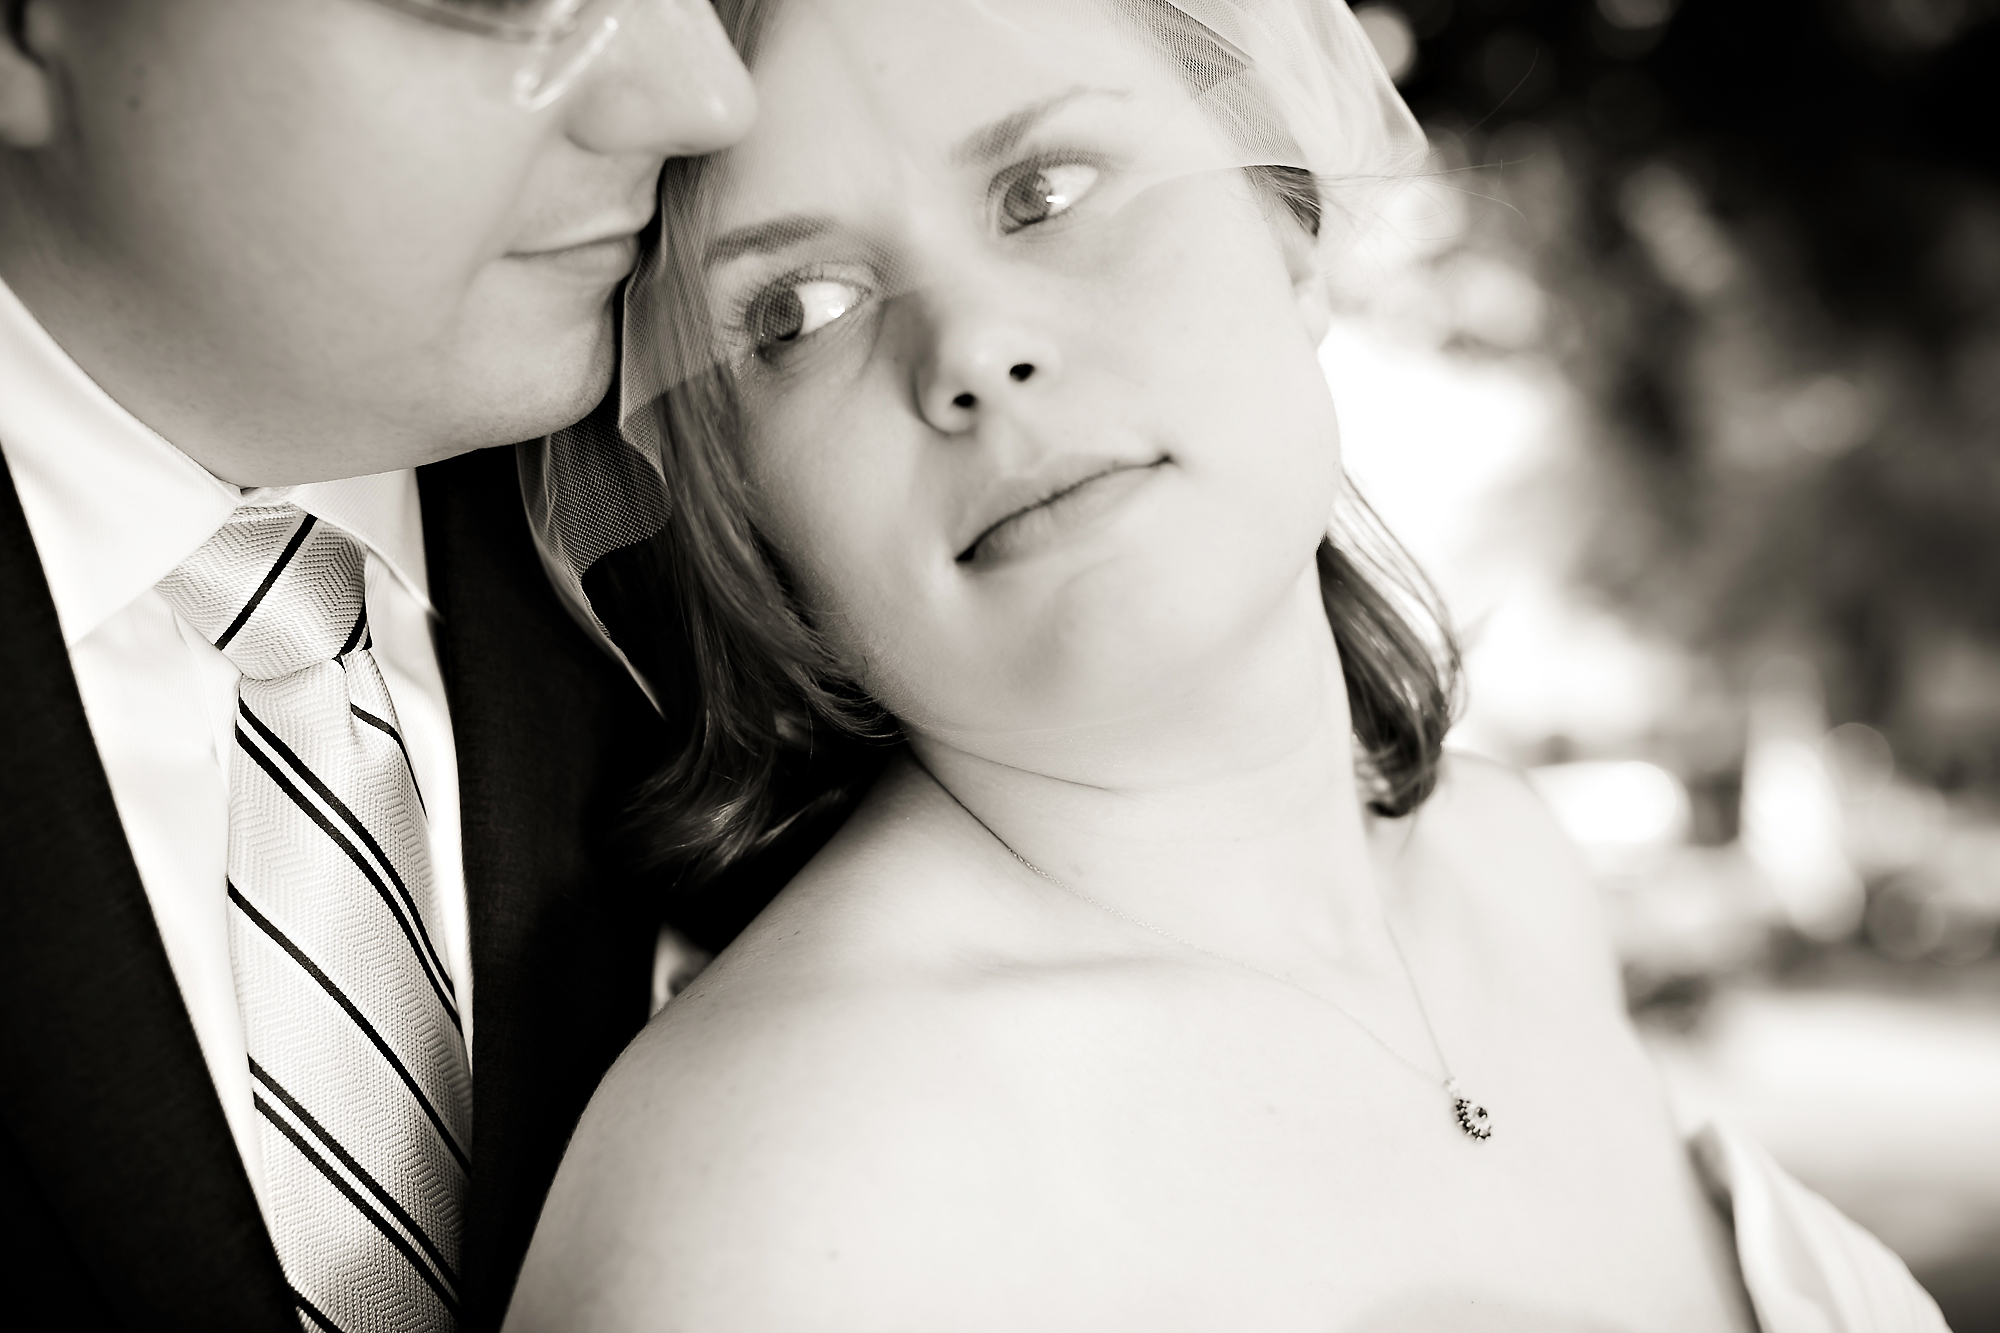 atlanta-wedding-photography-marlow-house-marietta-0025.jpg